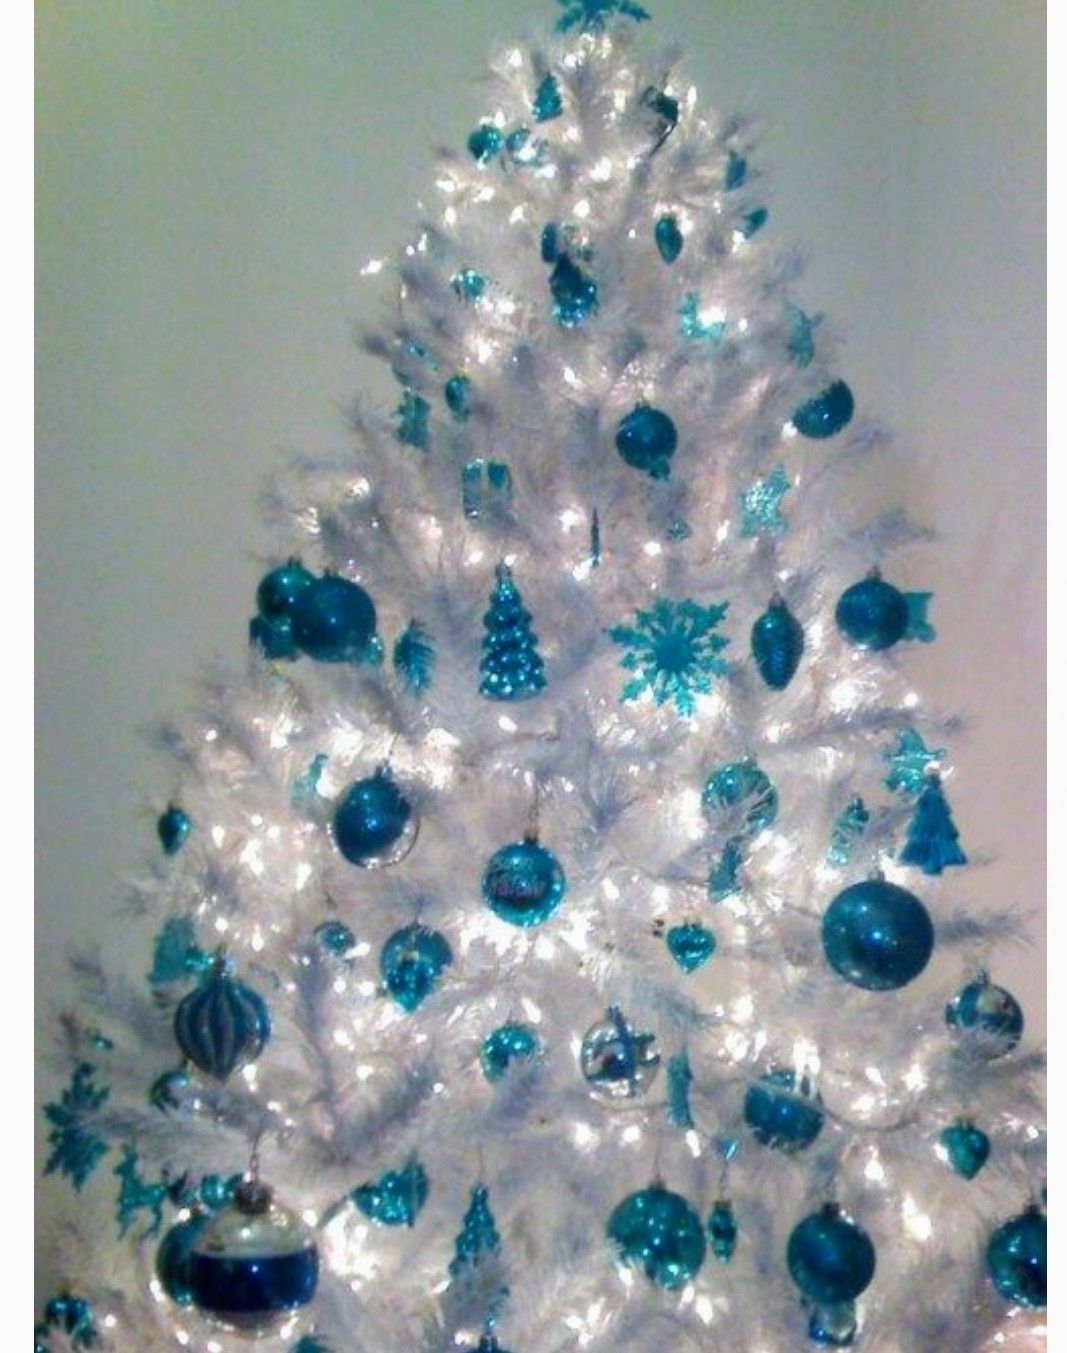 Turquoise Christmas Lights.Turquoise And White Christmas Tree Turquoise Christmas